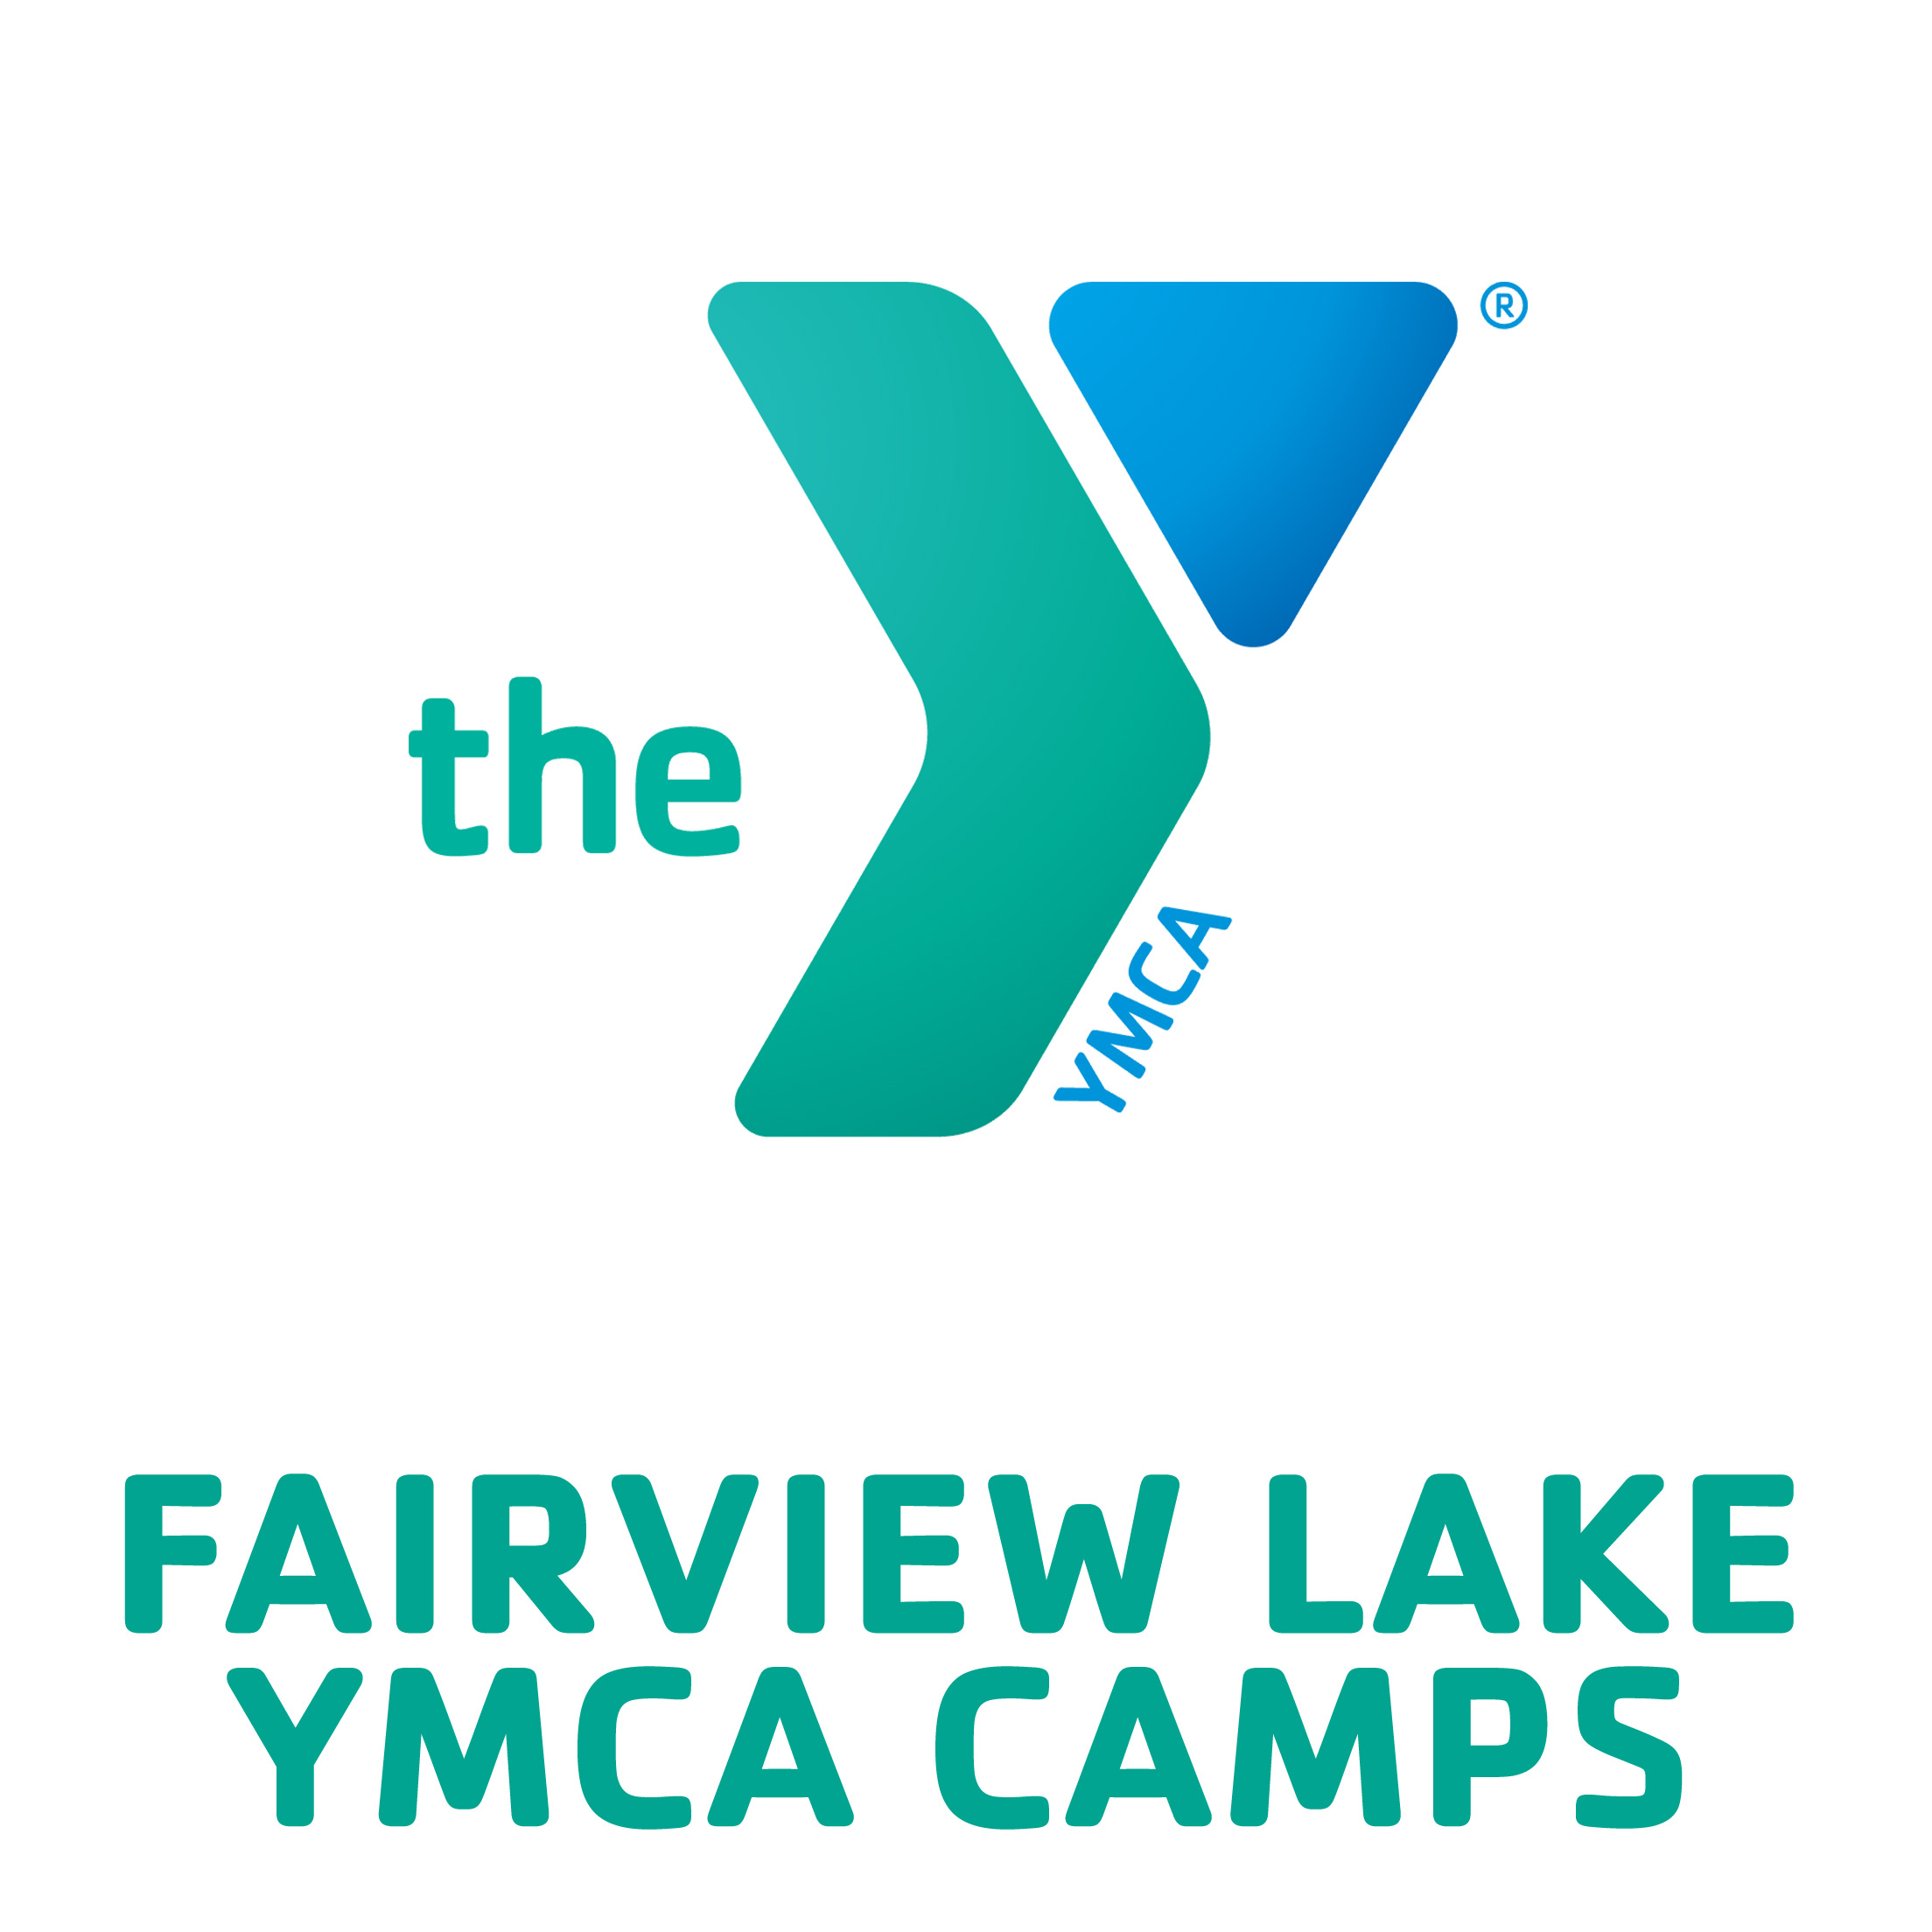 Fairview Lake YMCA Camps